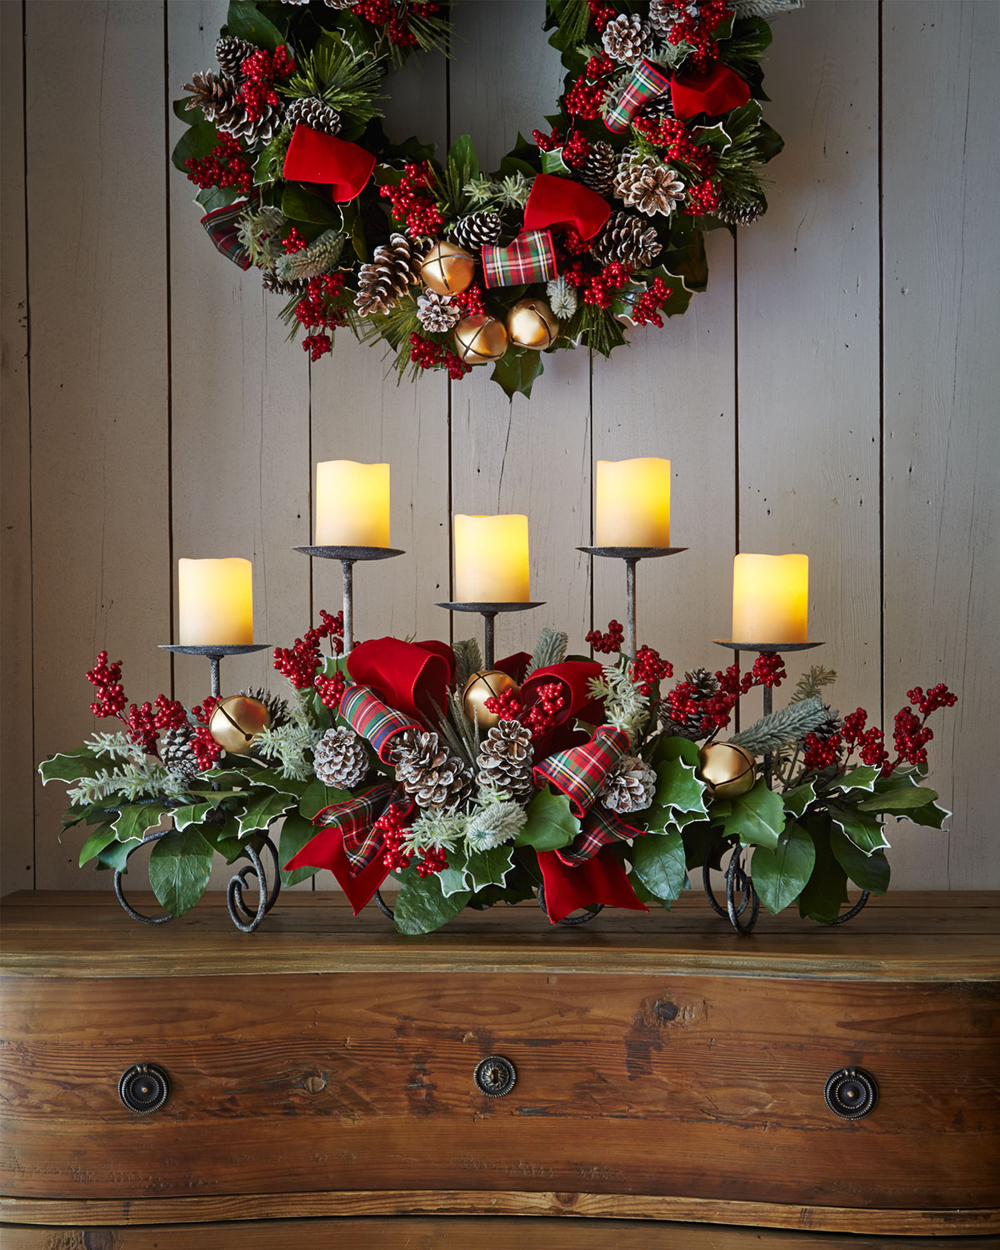 70 Christmas Decorations Ideas To Try This Year   A DIY Projects Rustic Christmas Decorations